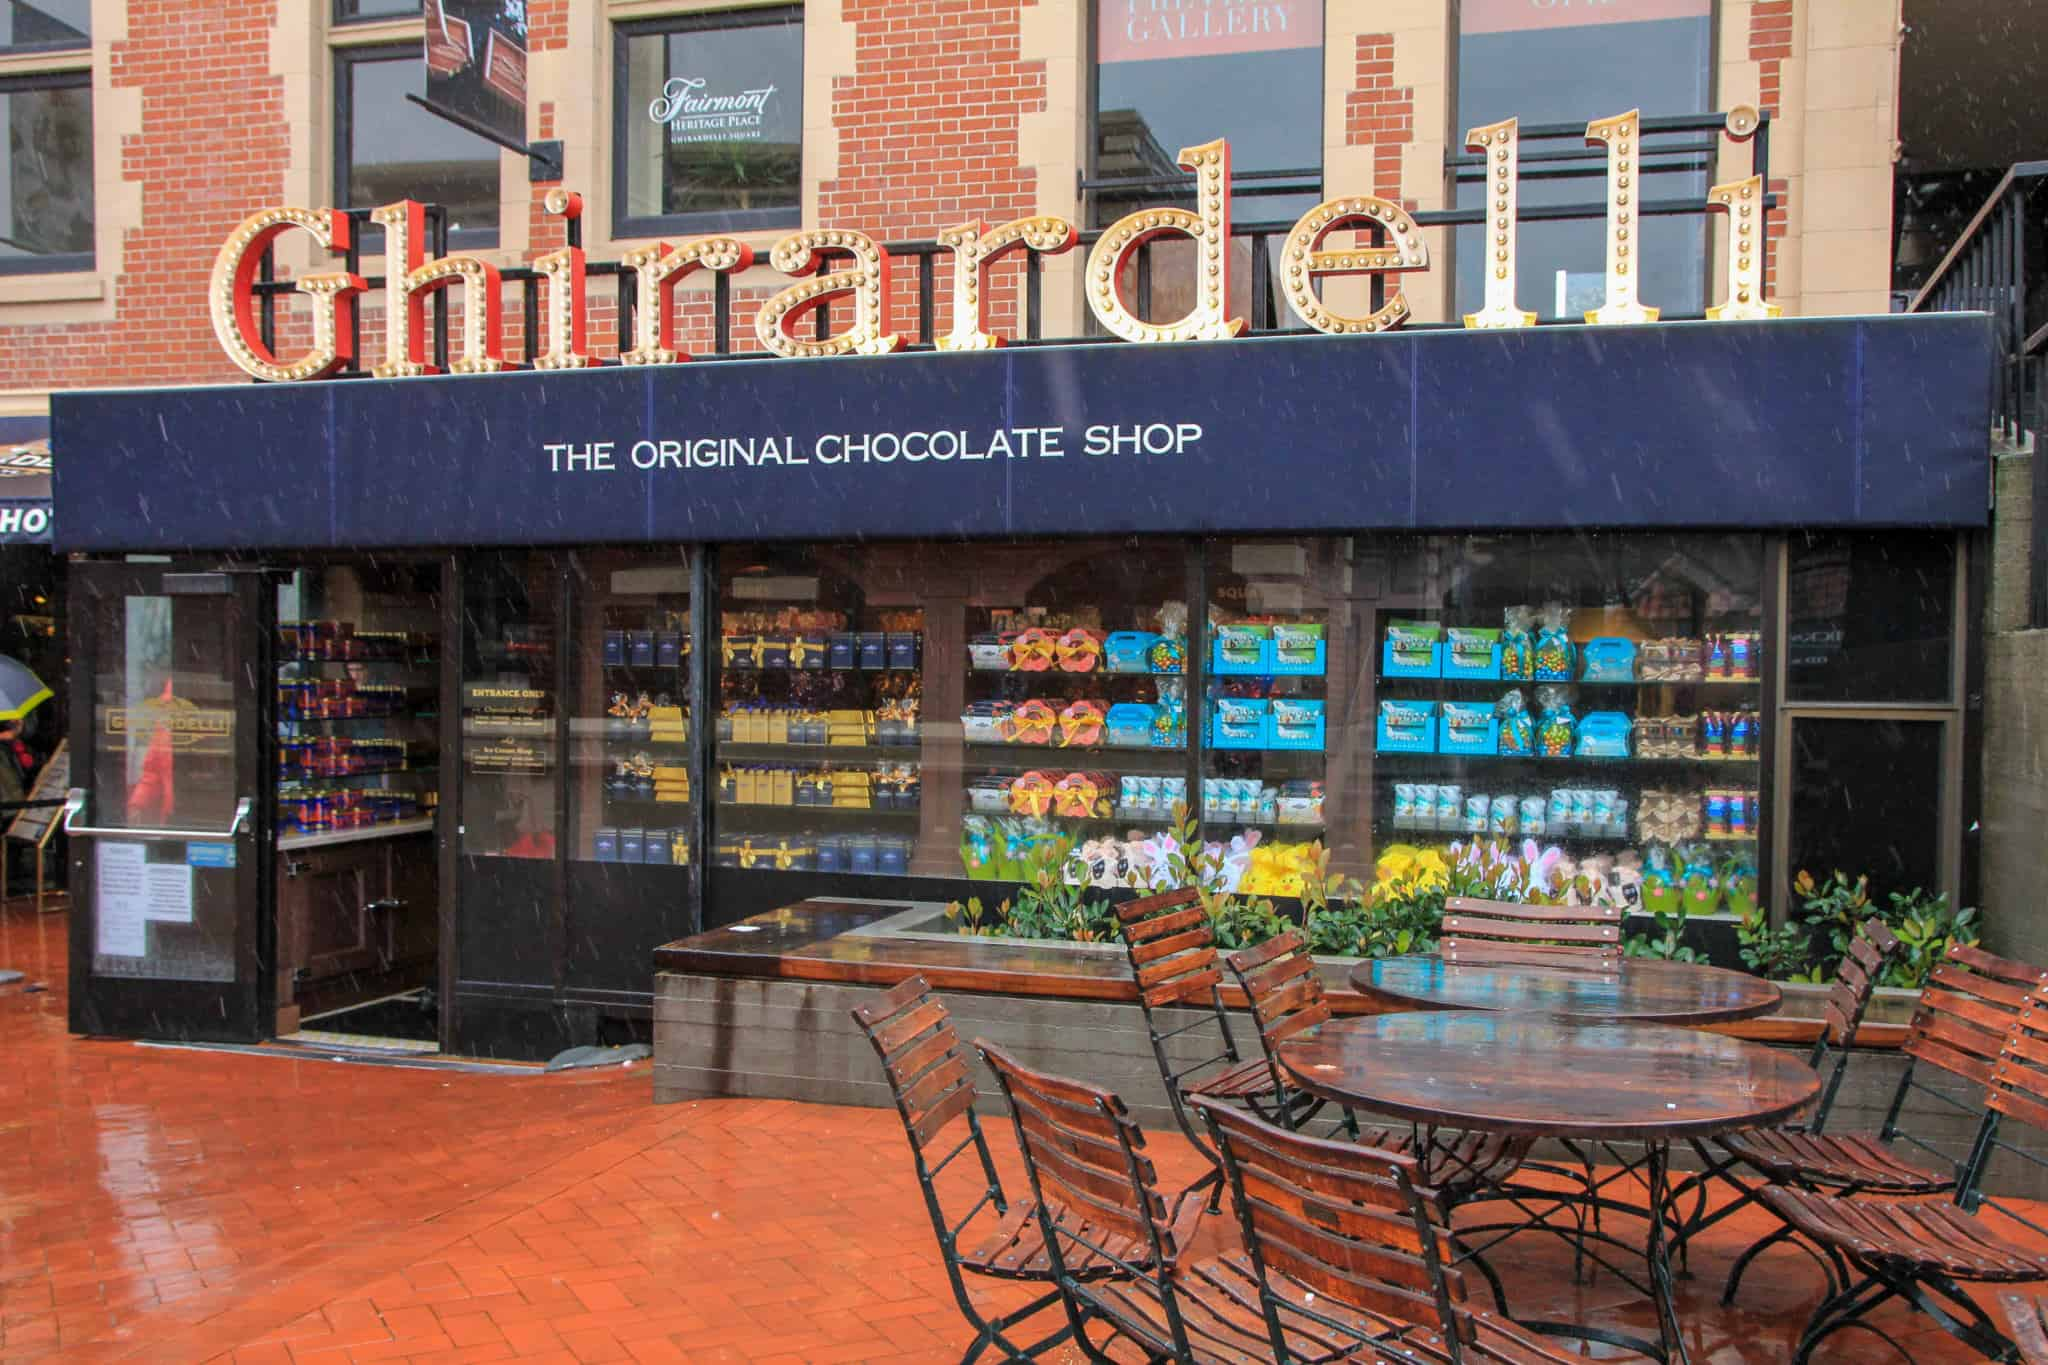 Grabbing some Ghirardelli Chocolate is an absolute must do when spending 2 days in San Francisco